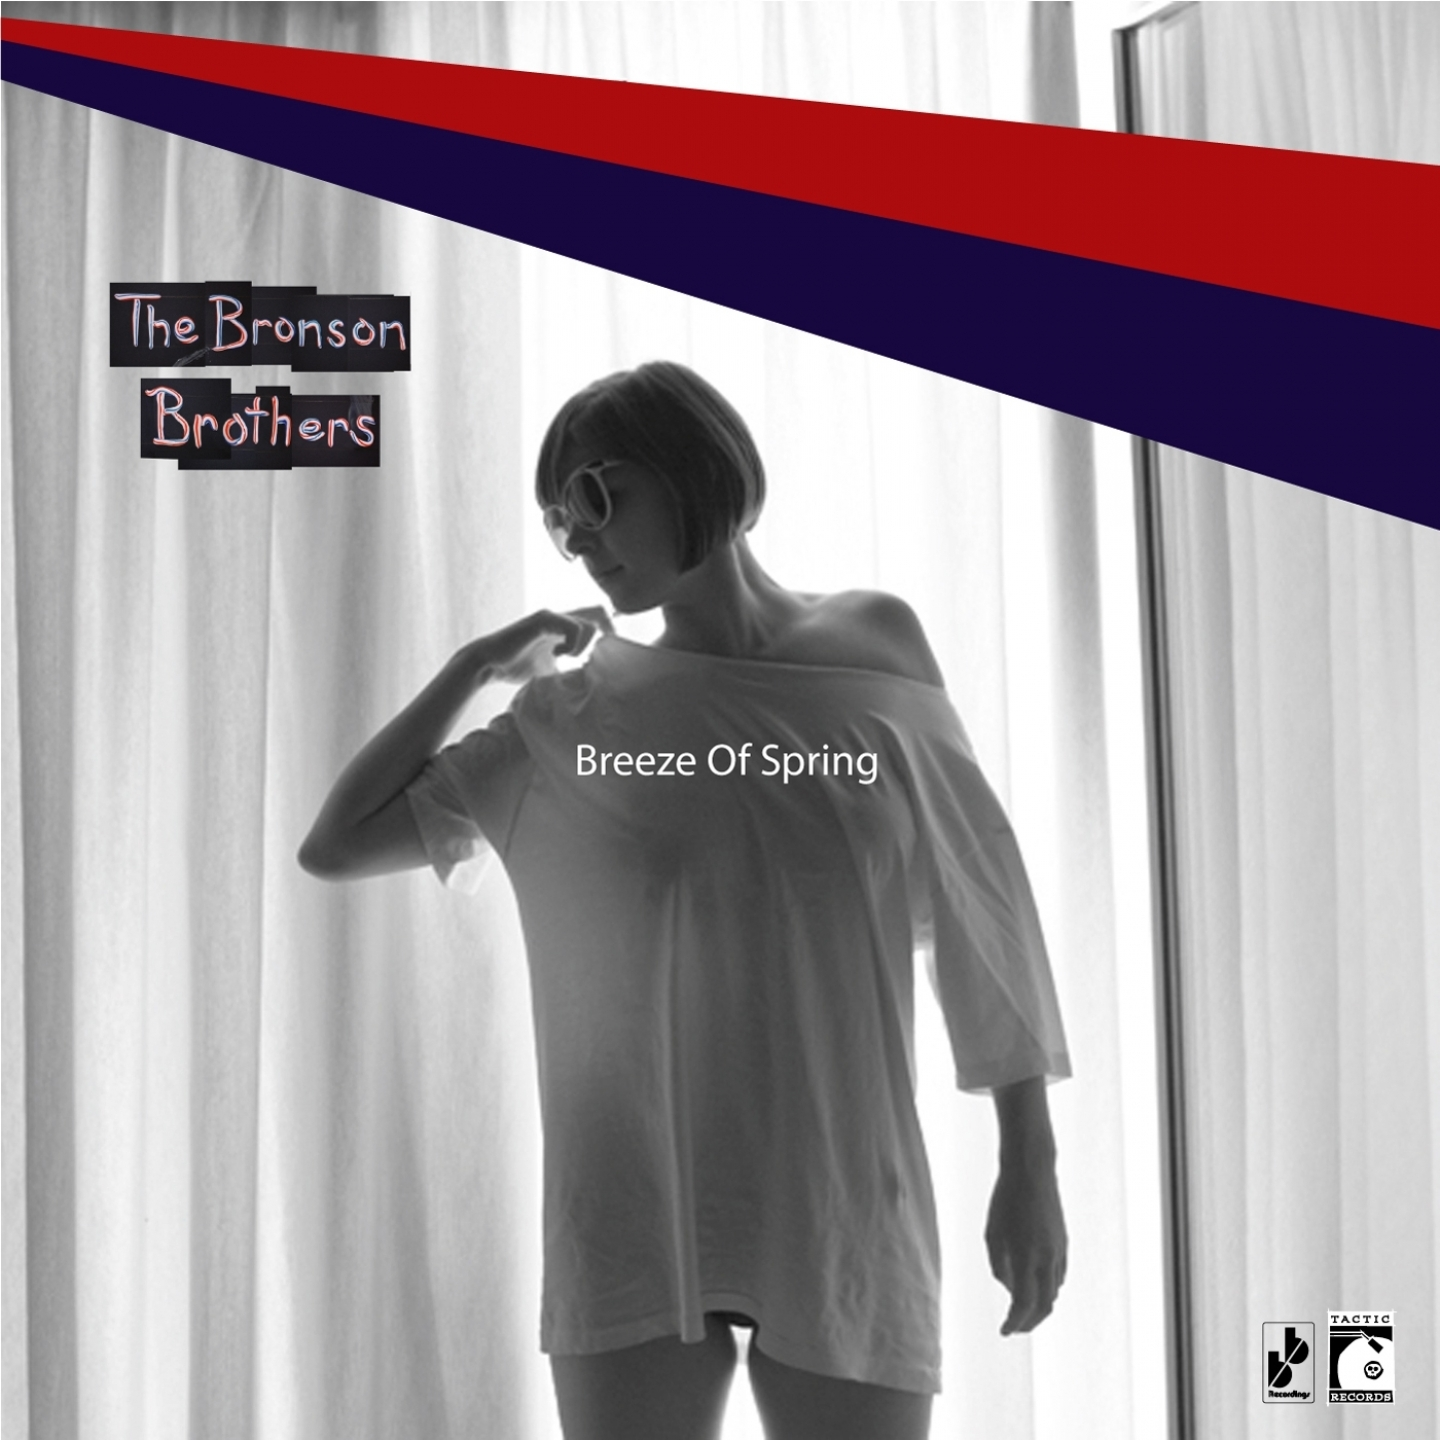 The Bronson Brothers – 'Breeze of Spring' (Single)